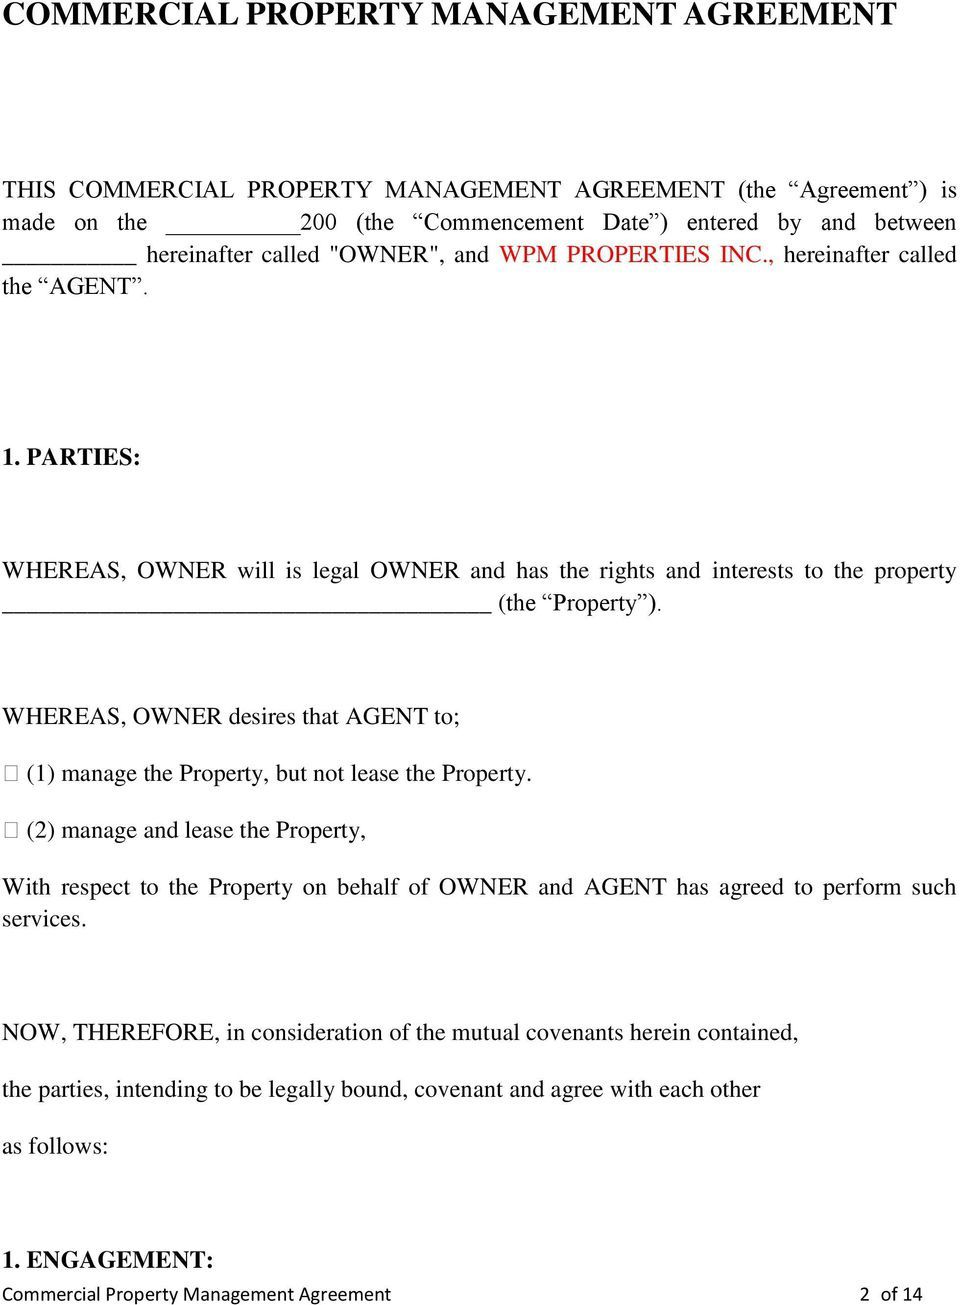 005 Imposing Property Management Contract Form Sample  Agreement Template Free UkFull